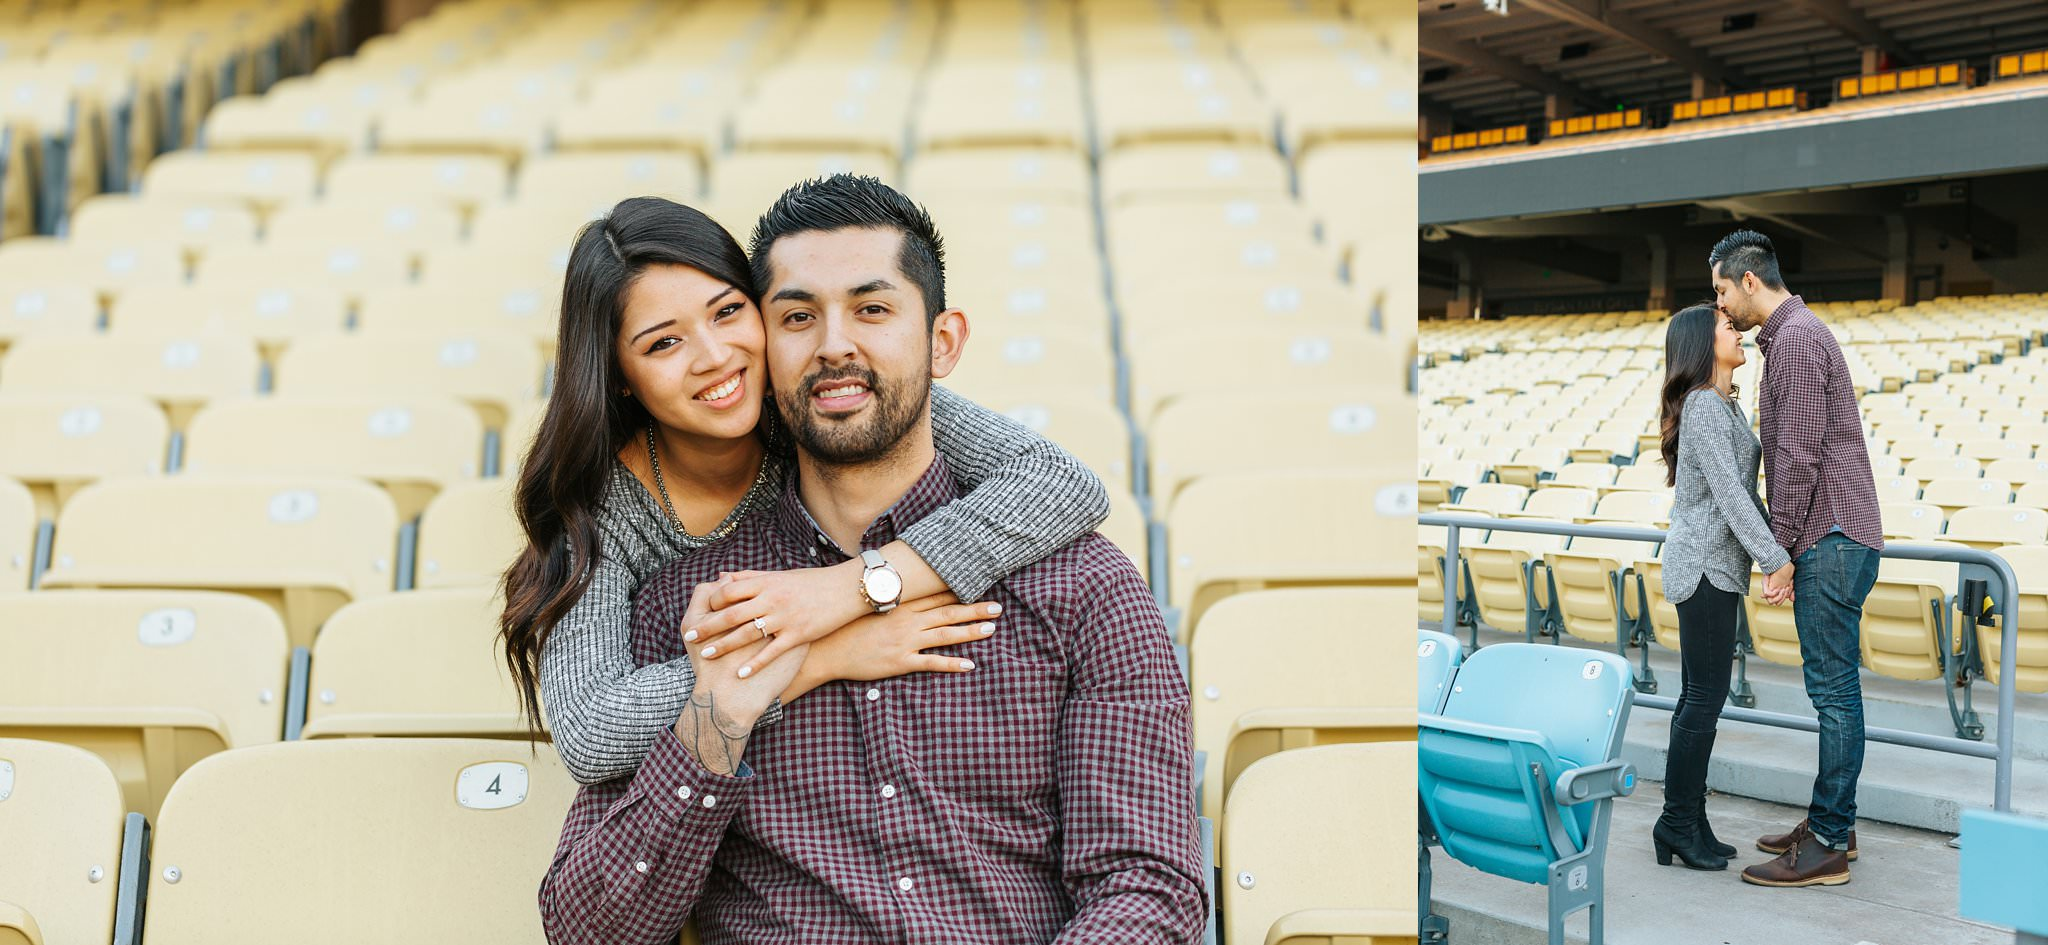 Dodger fan engagement session in Los Angeles, CA - http://brittneyhannonphotography.com